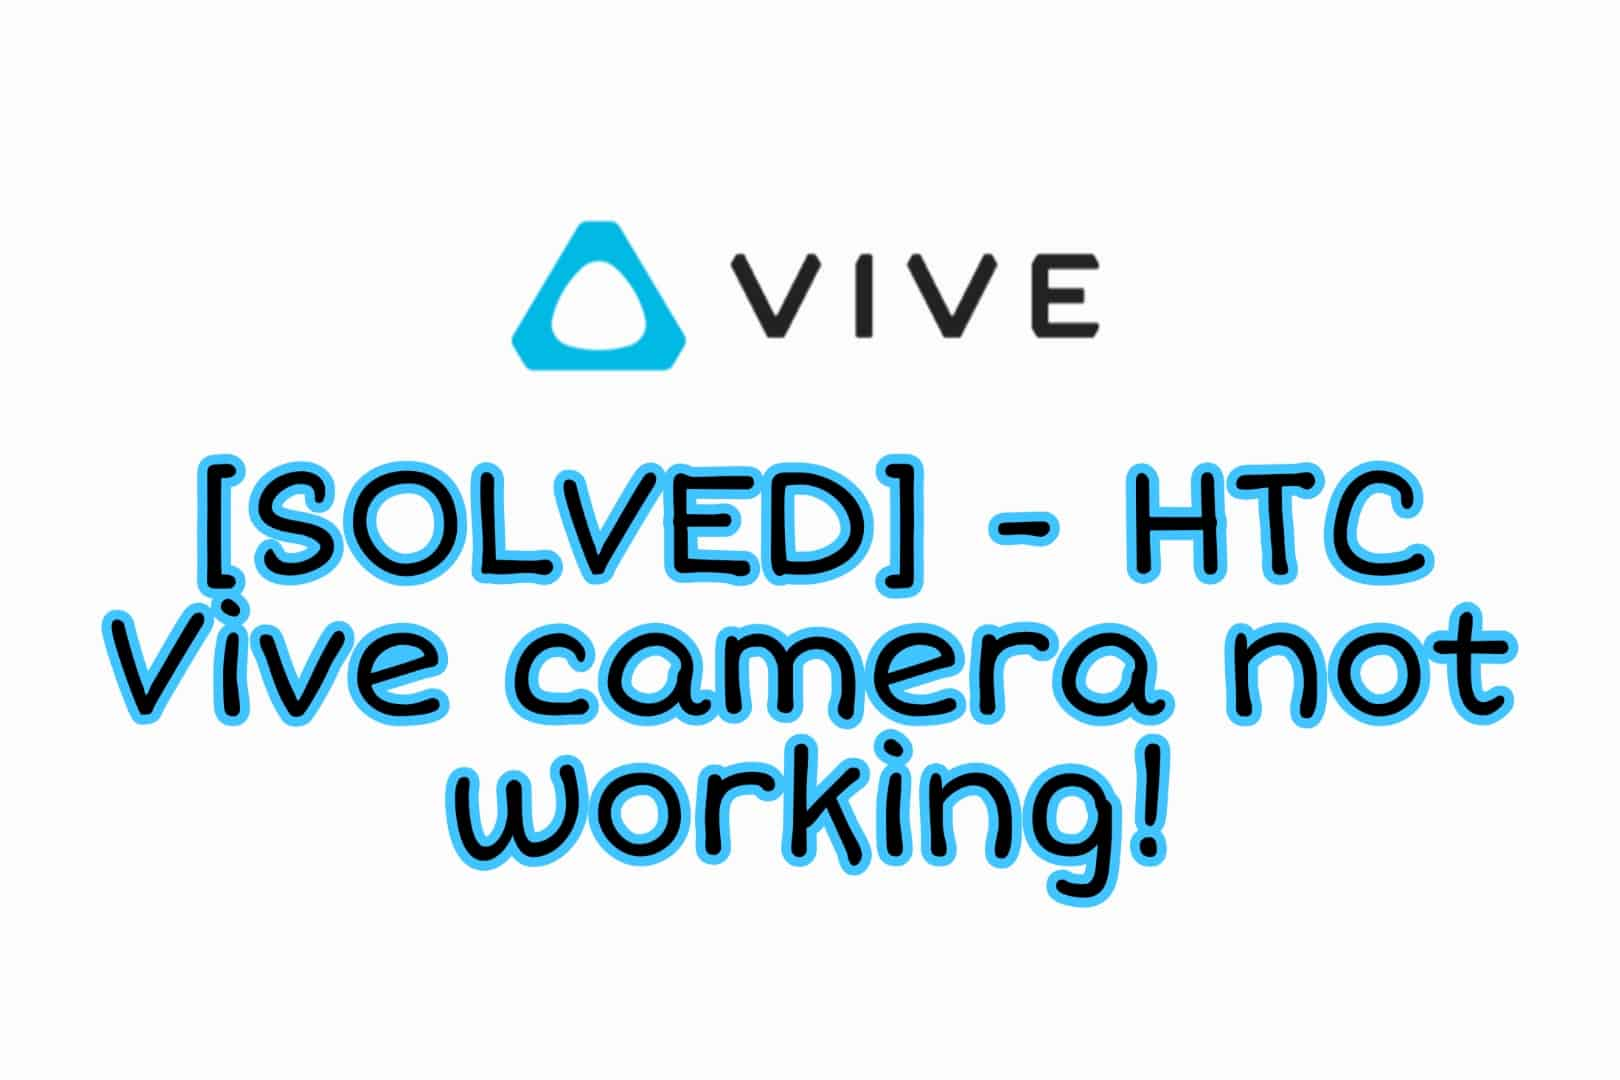 Vive camera not working